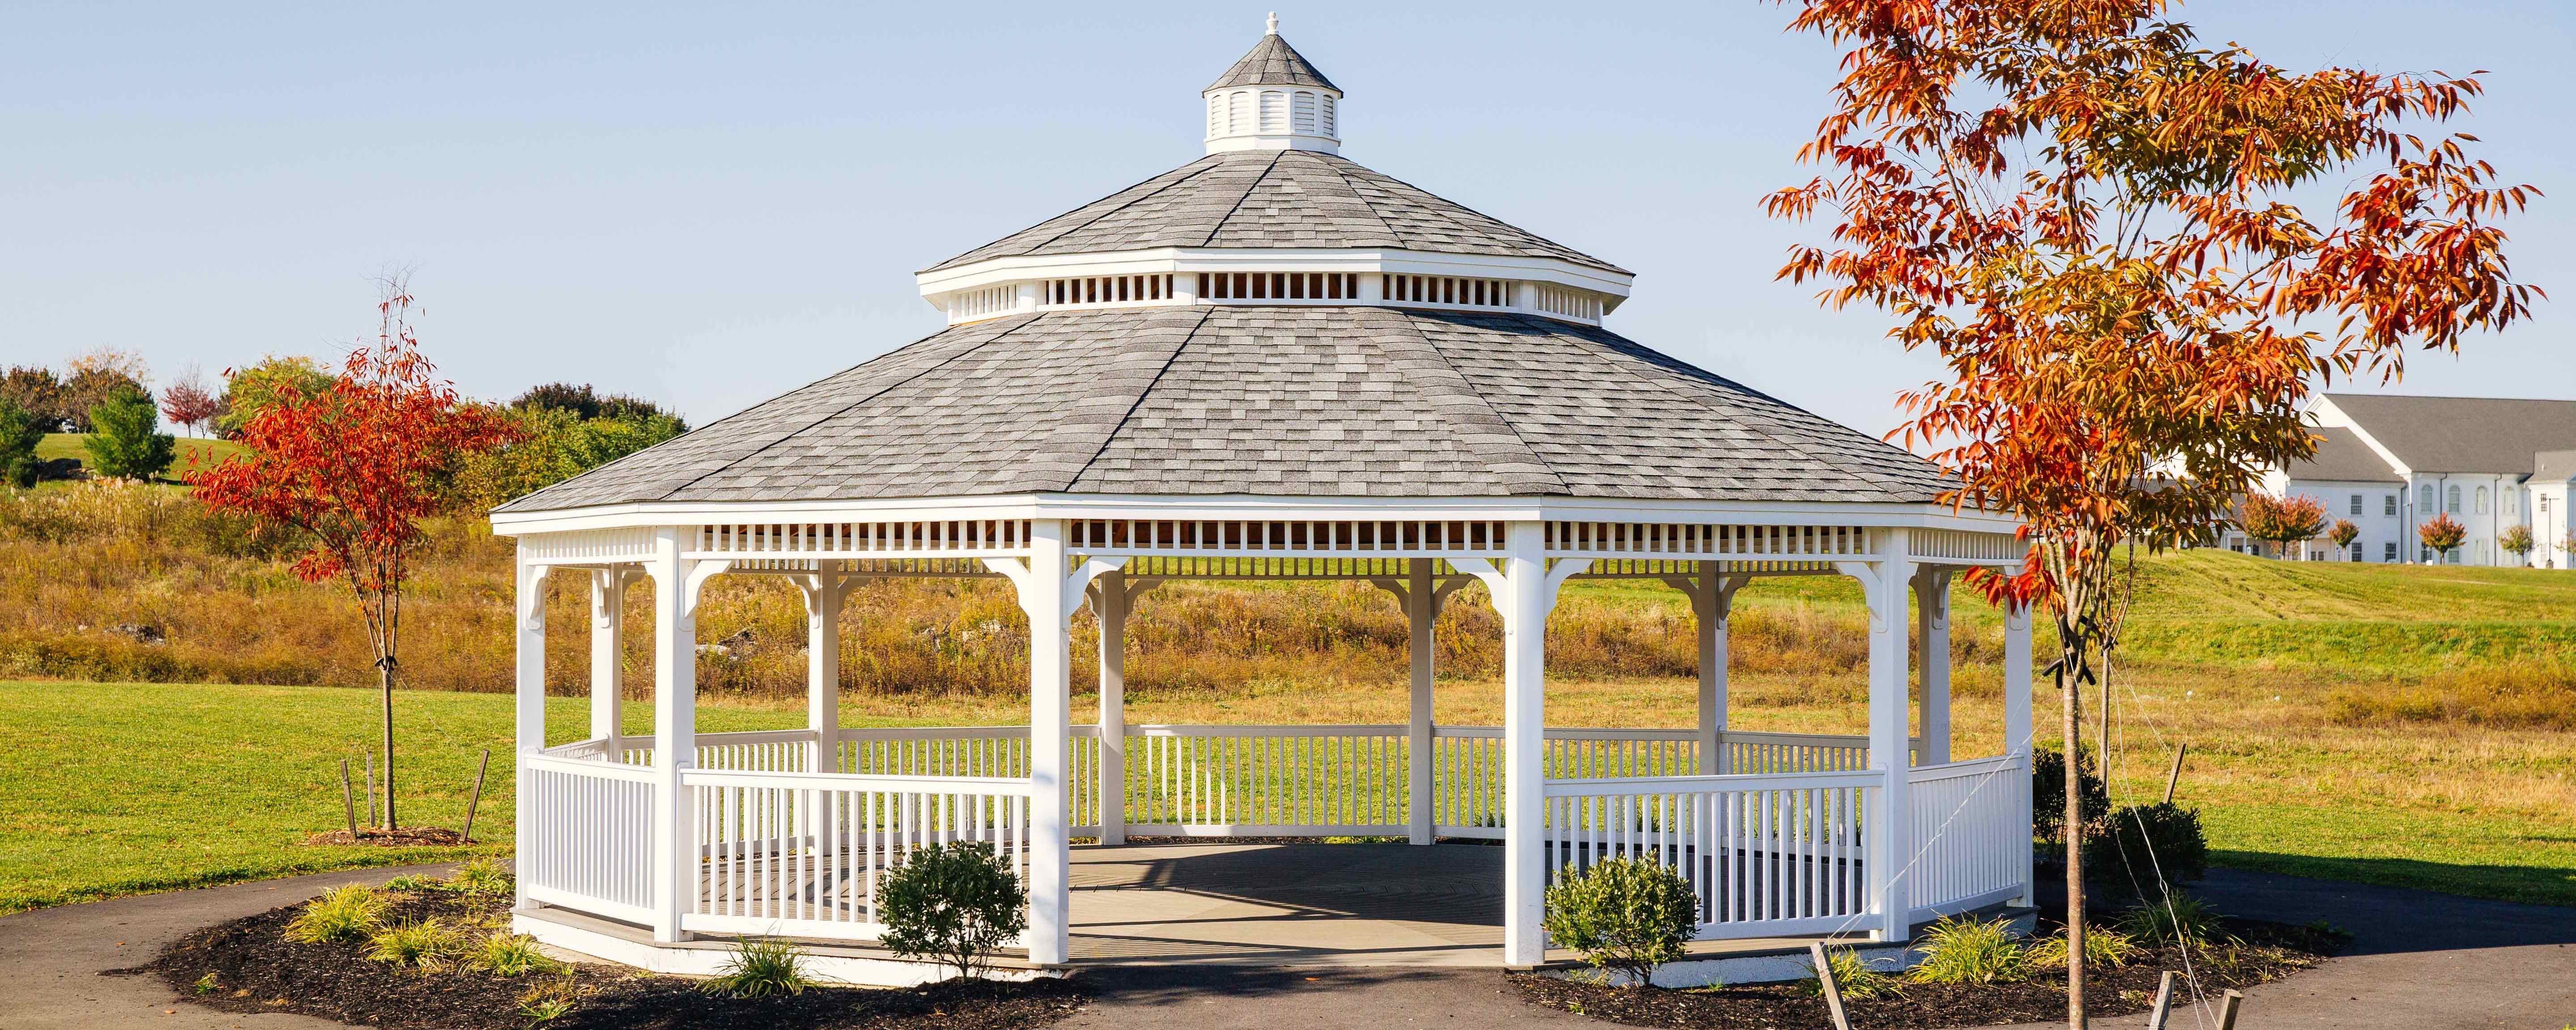 30 Foot Dodecagon Gazebo